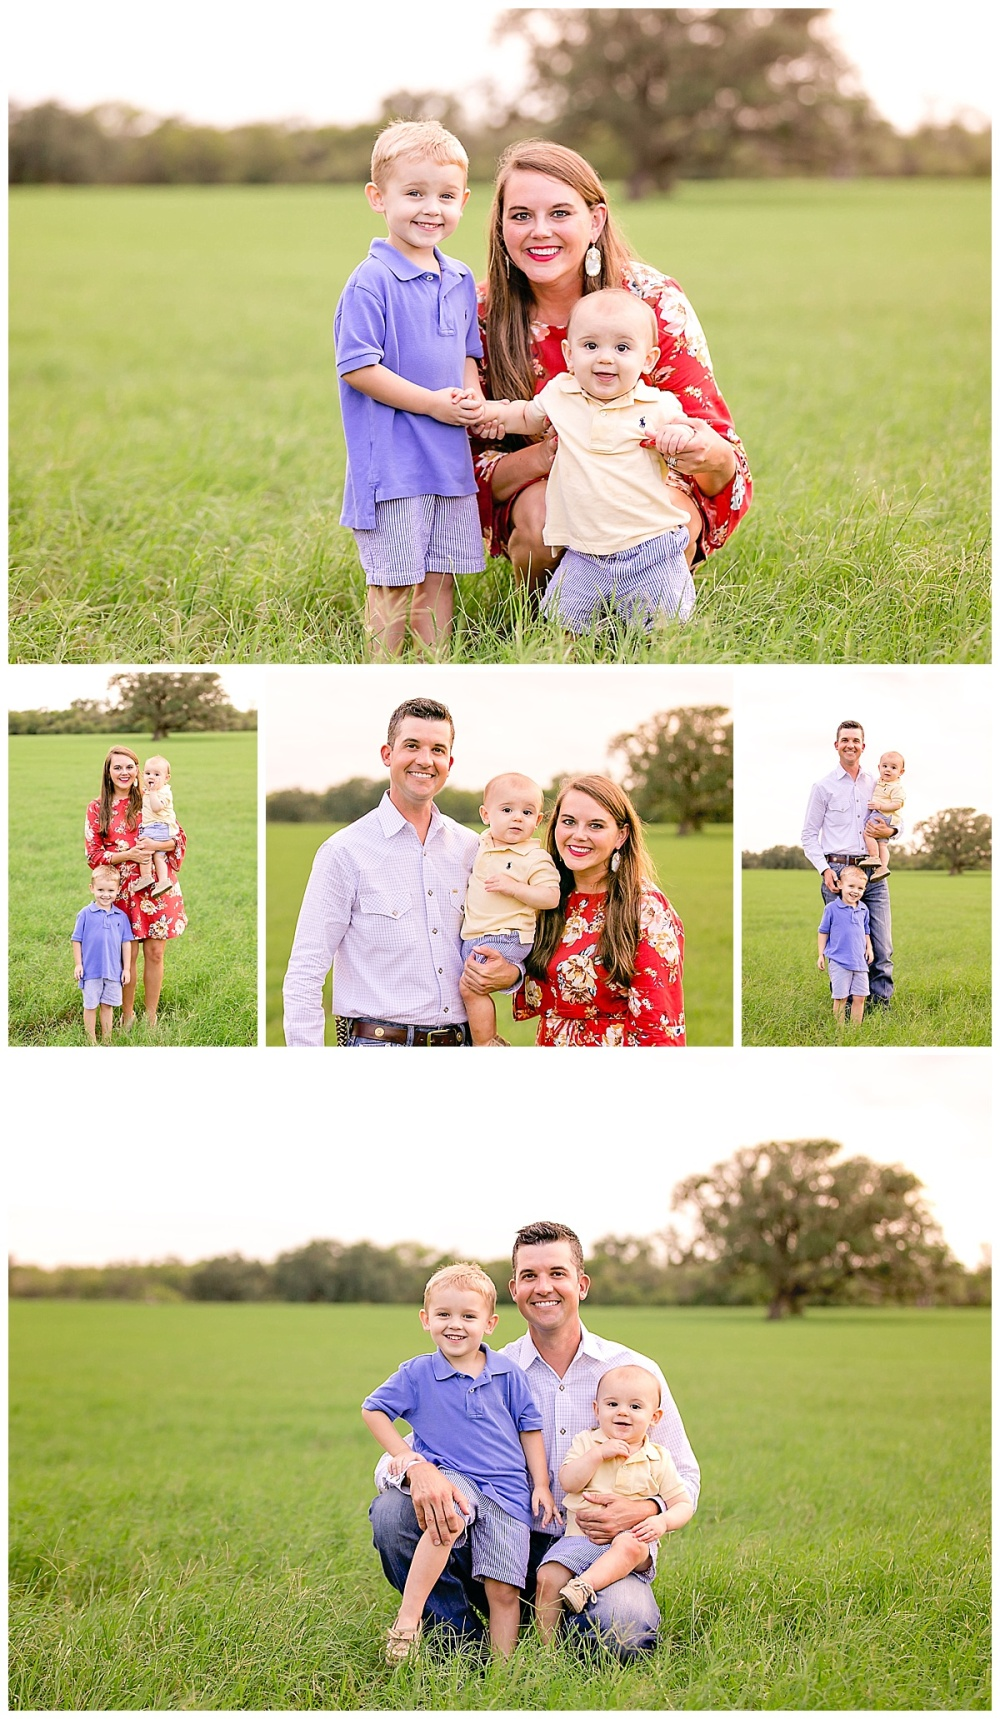 Carly-Barton-Photography-Texas-Family-Photos-Rustic-Field-Cake-Smash-Voss_0012.jpg